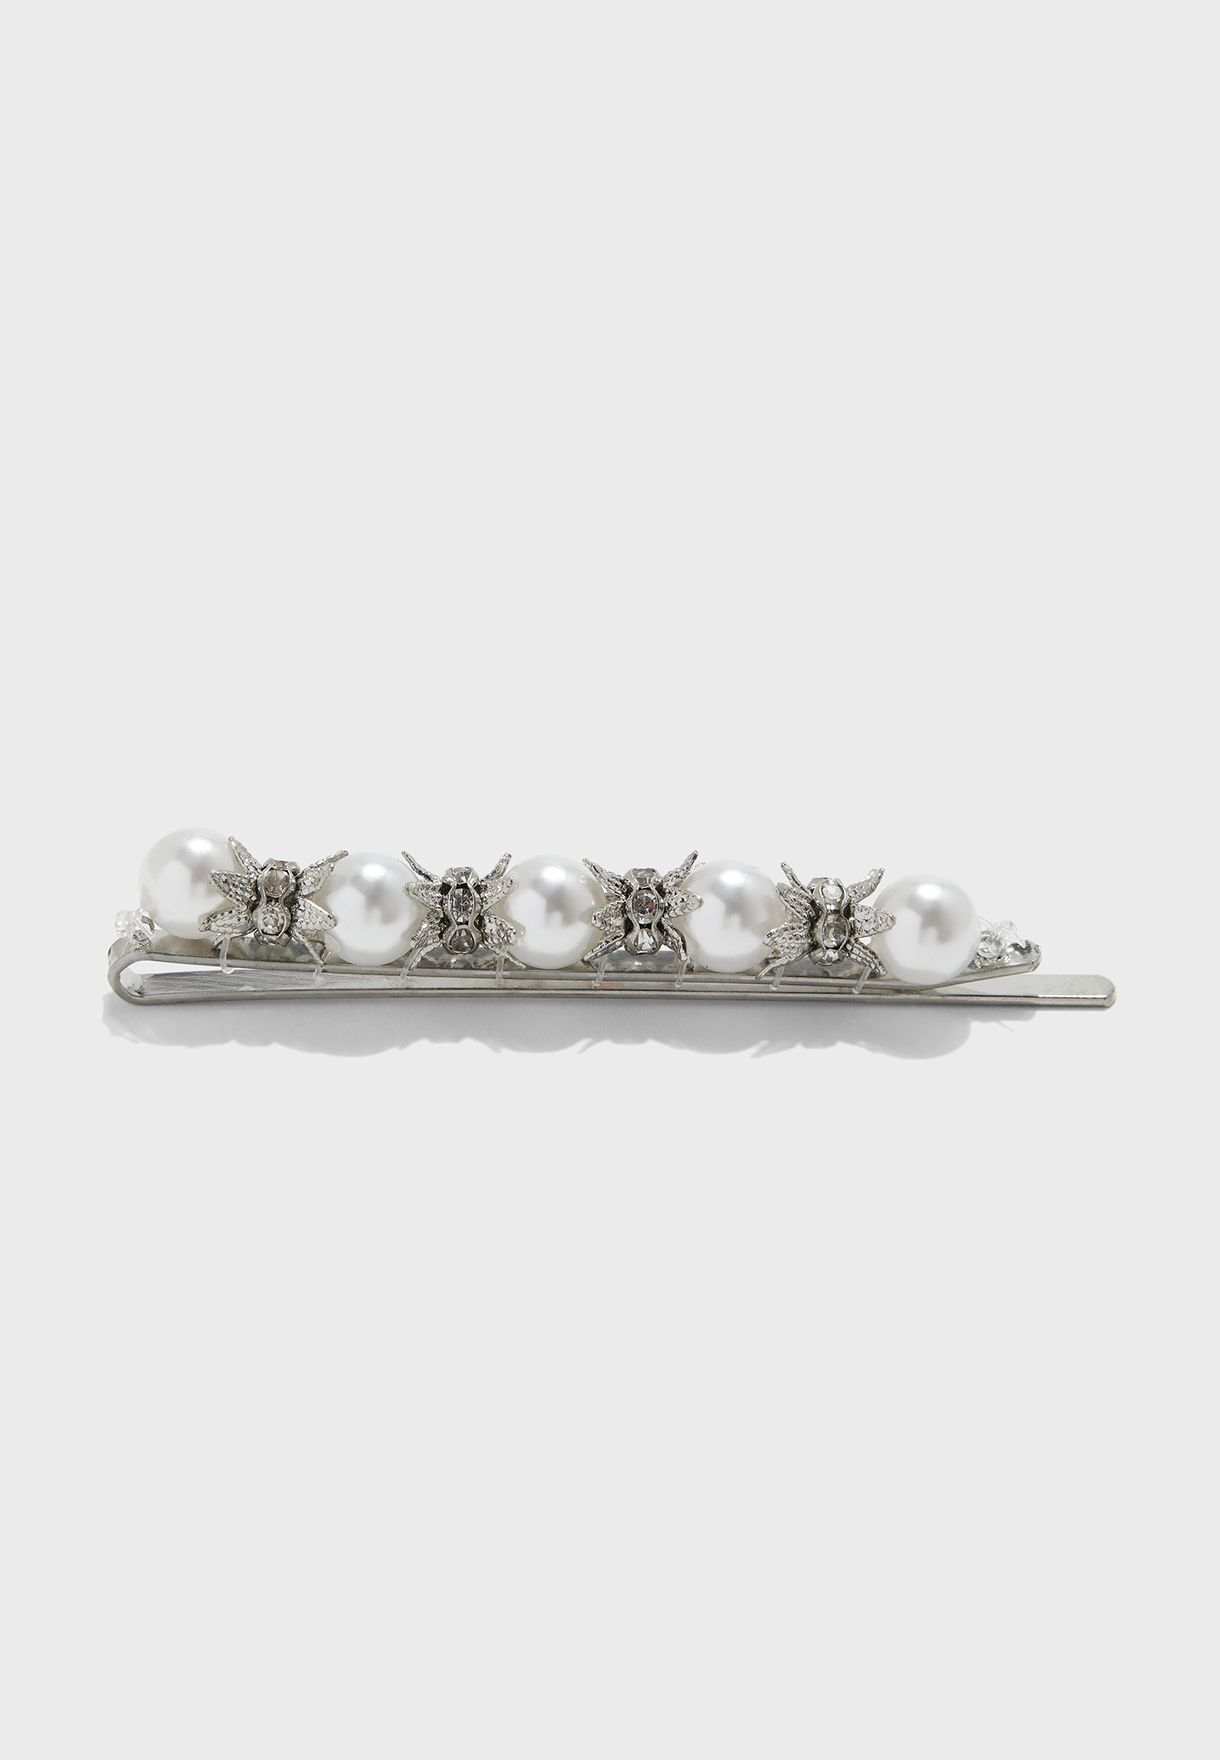 Pearl & Diamante Hair Slide